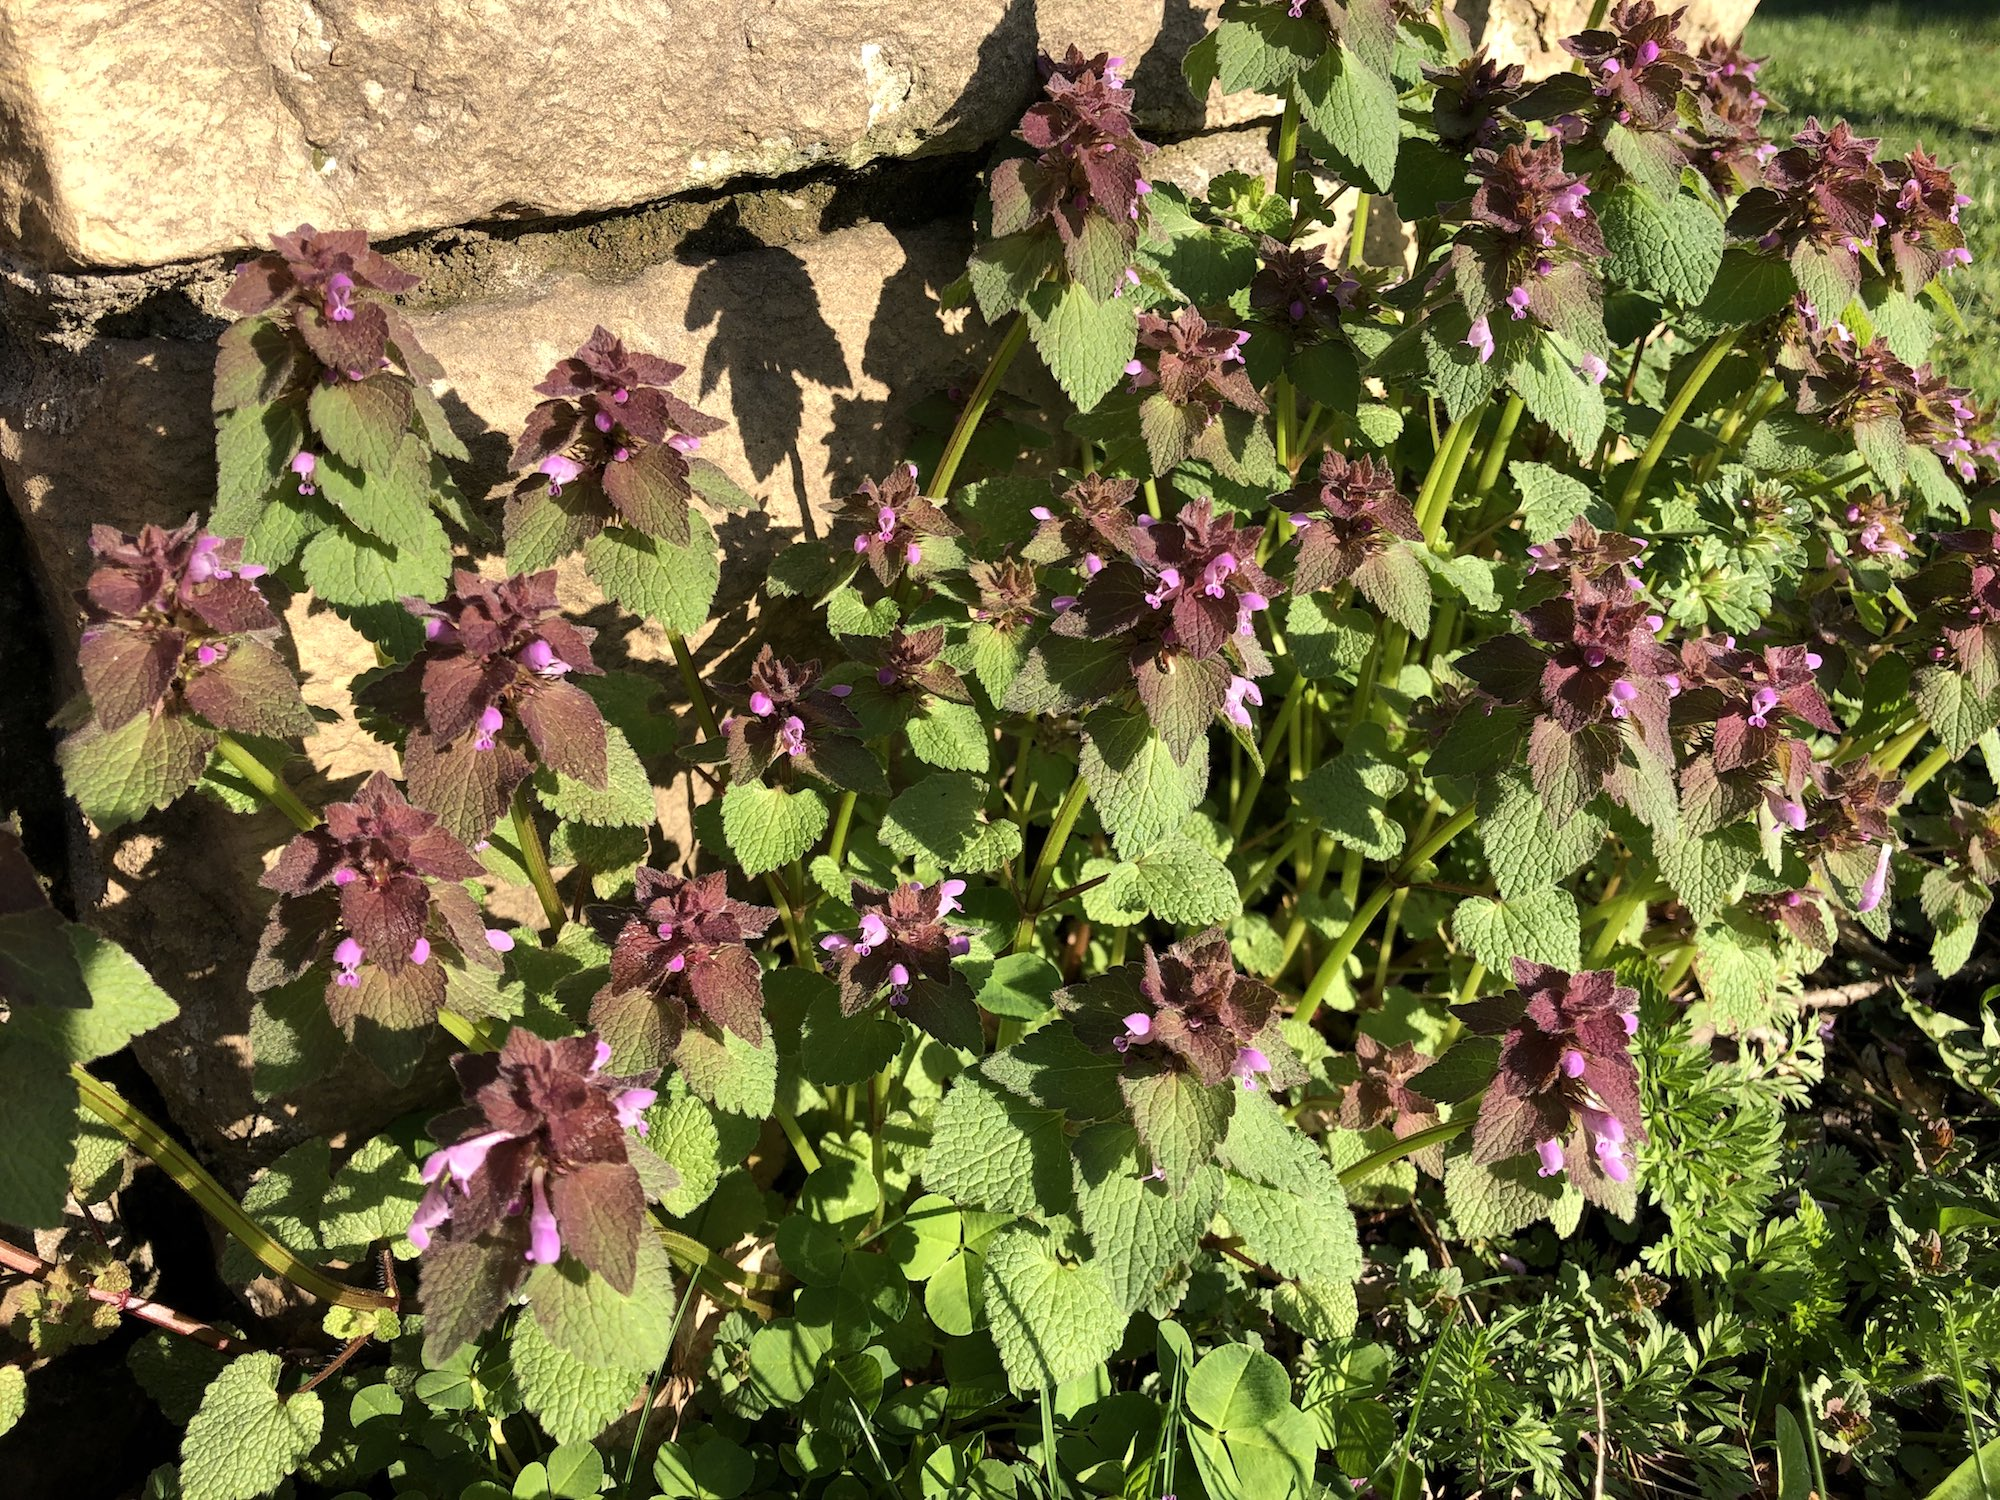 Purple Dead-Nettles on May 3, 2019.